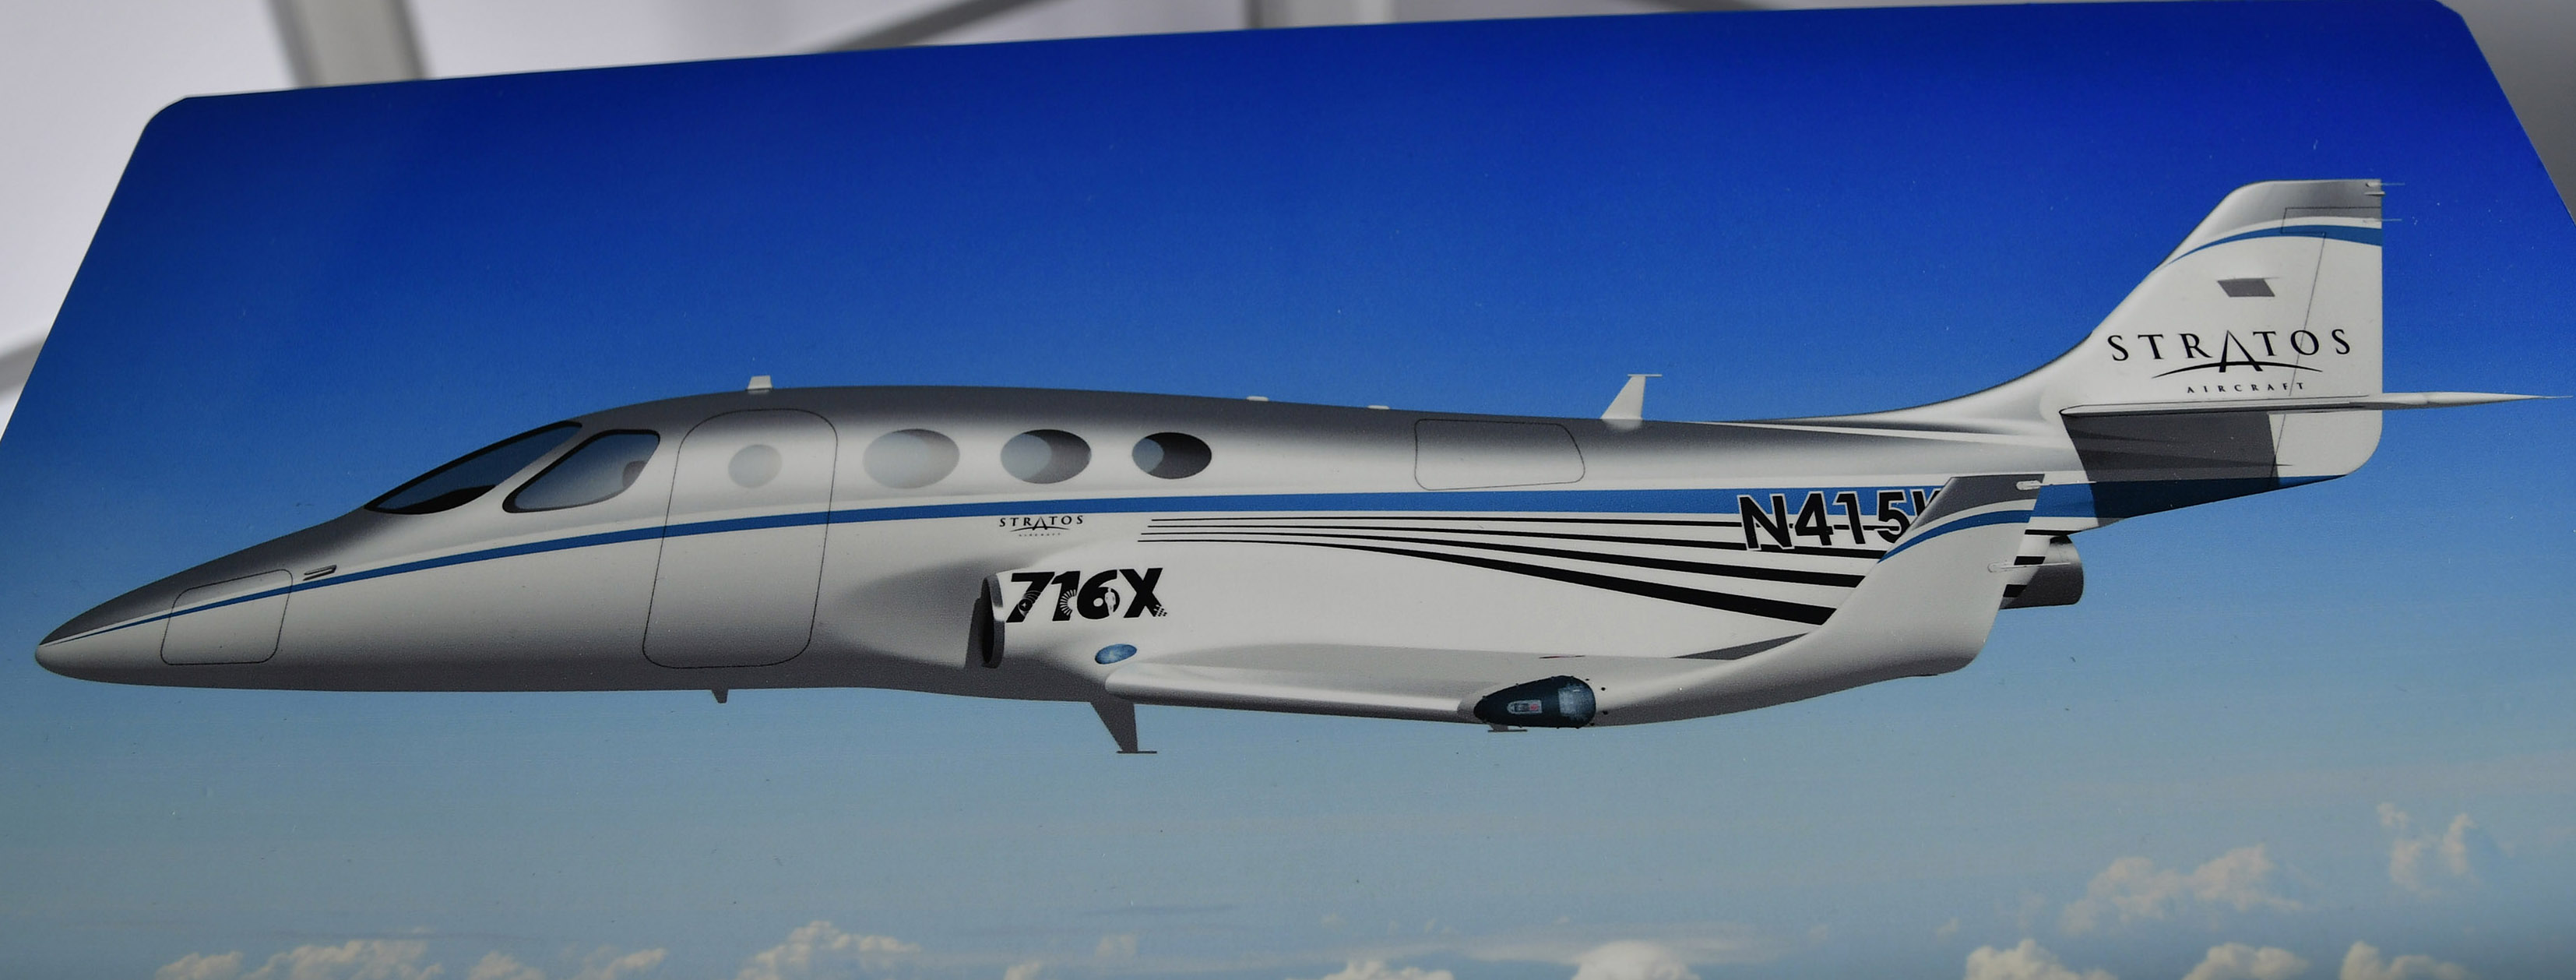 A drawing of a Stratos 716X shows the twin jet's stretched cabin during EAA AirVenture at Wittman Regional Airport in Oshkosh, Wisconsin, July 23, 2018. Photo by David Tulis.